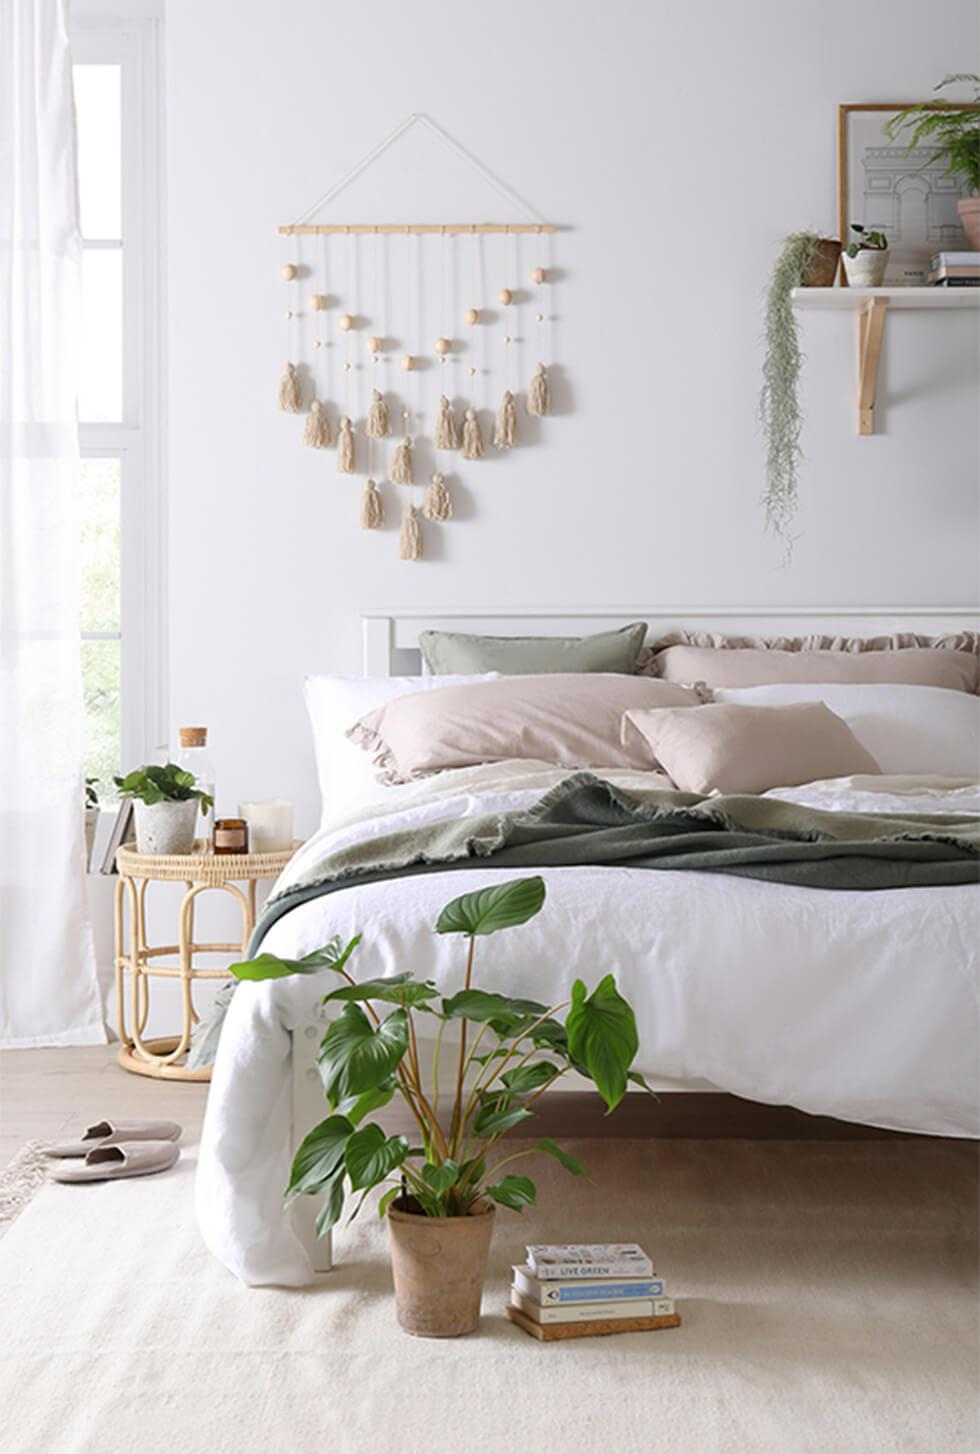 A white wooden bed in a calm and soothing neutral bedroom